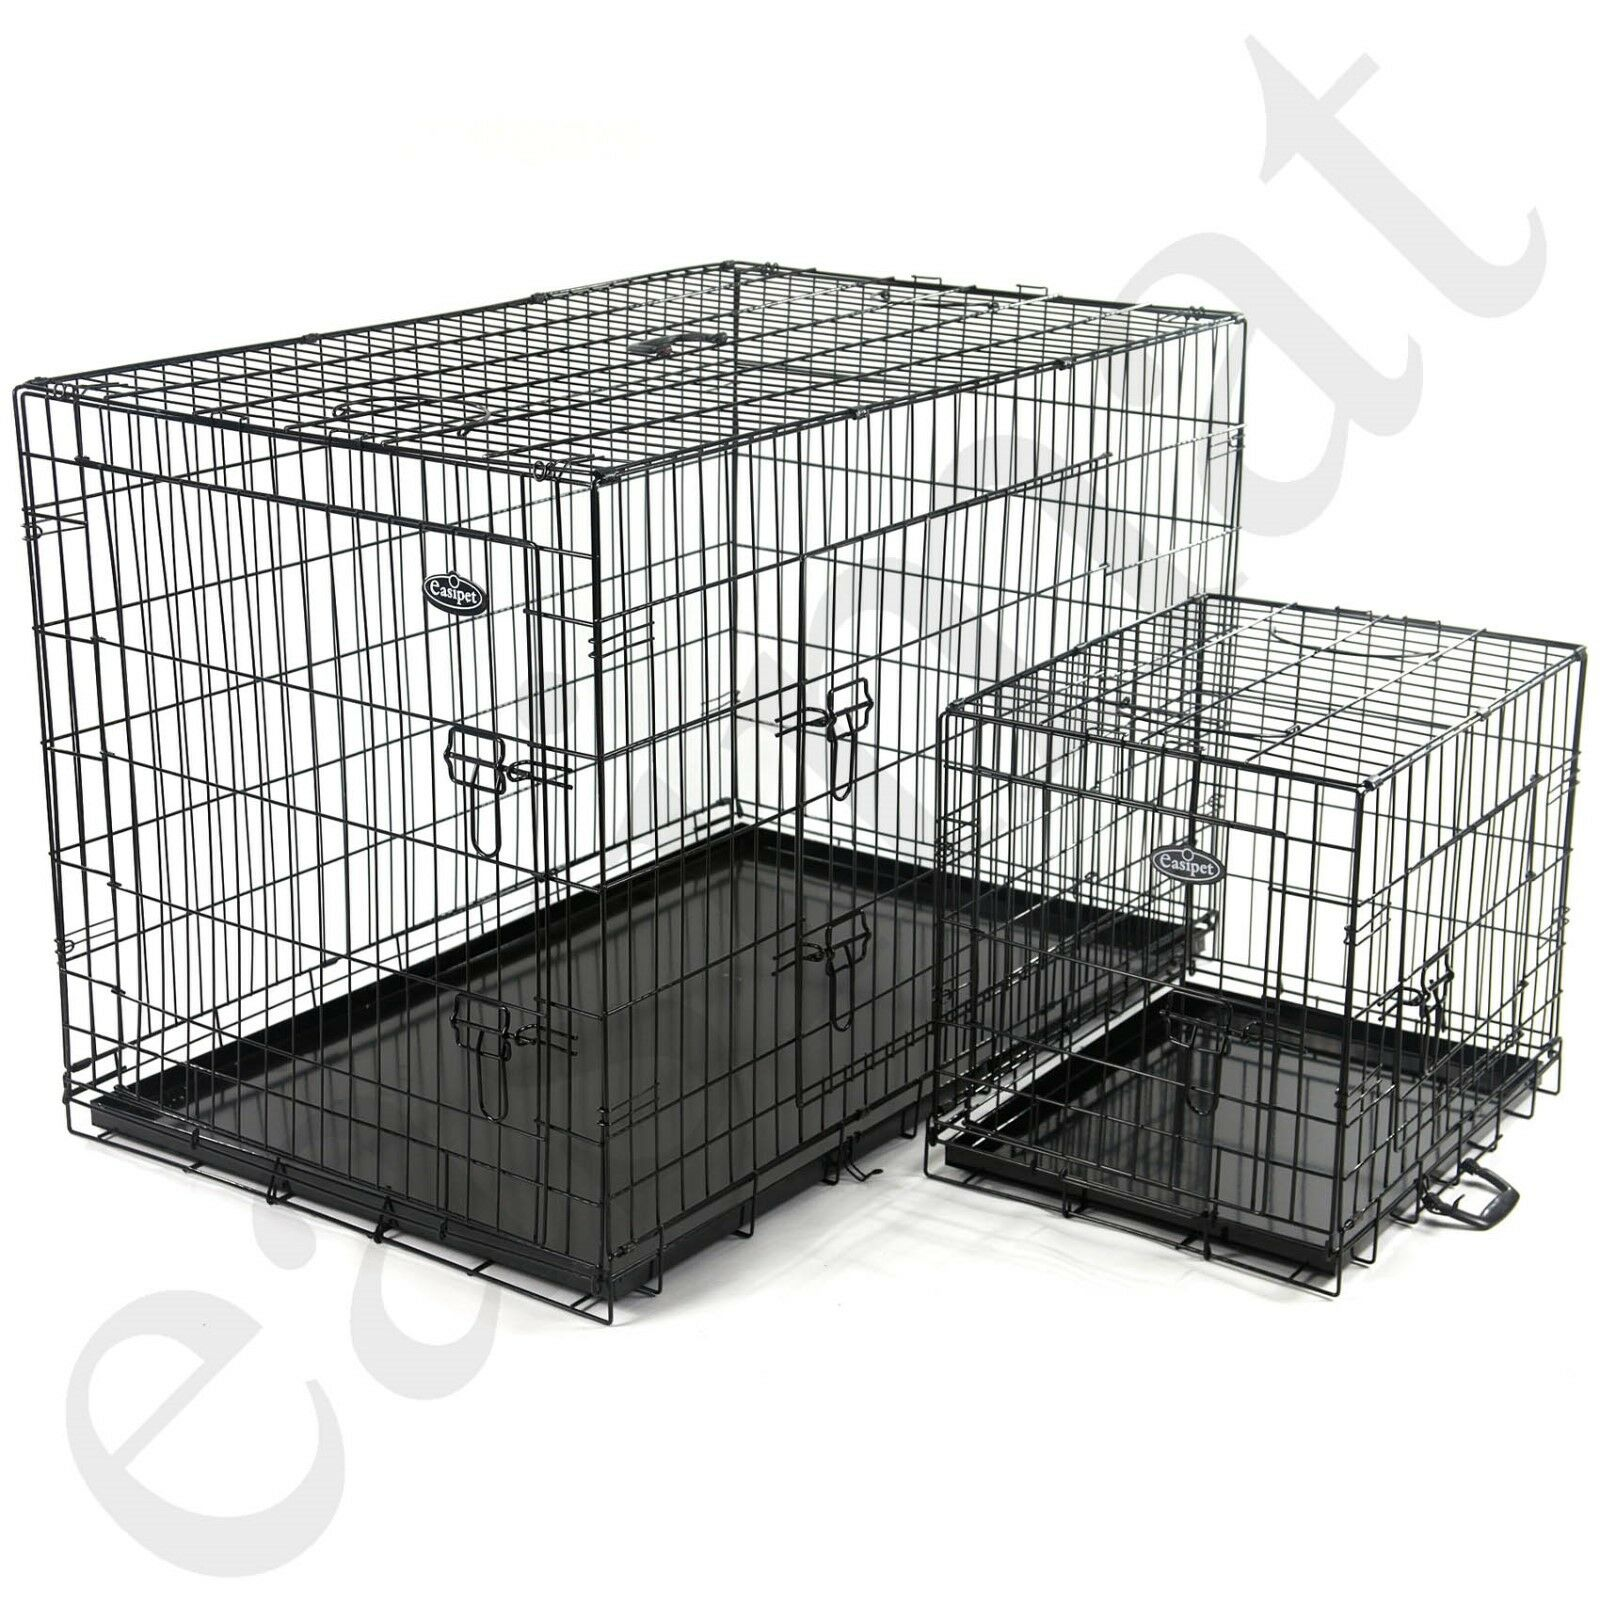 Training Your Dog To Use A Crate